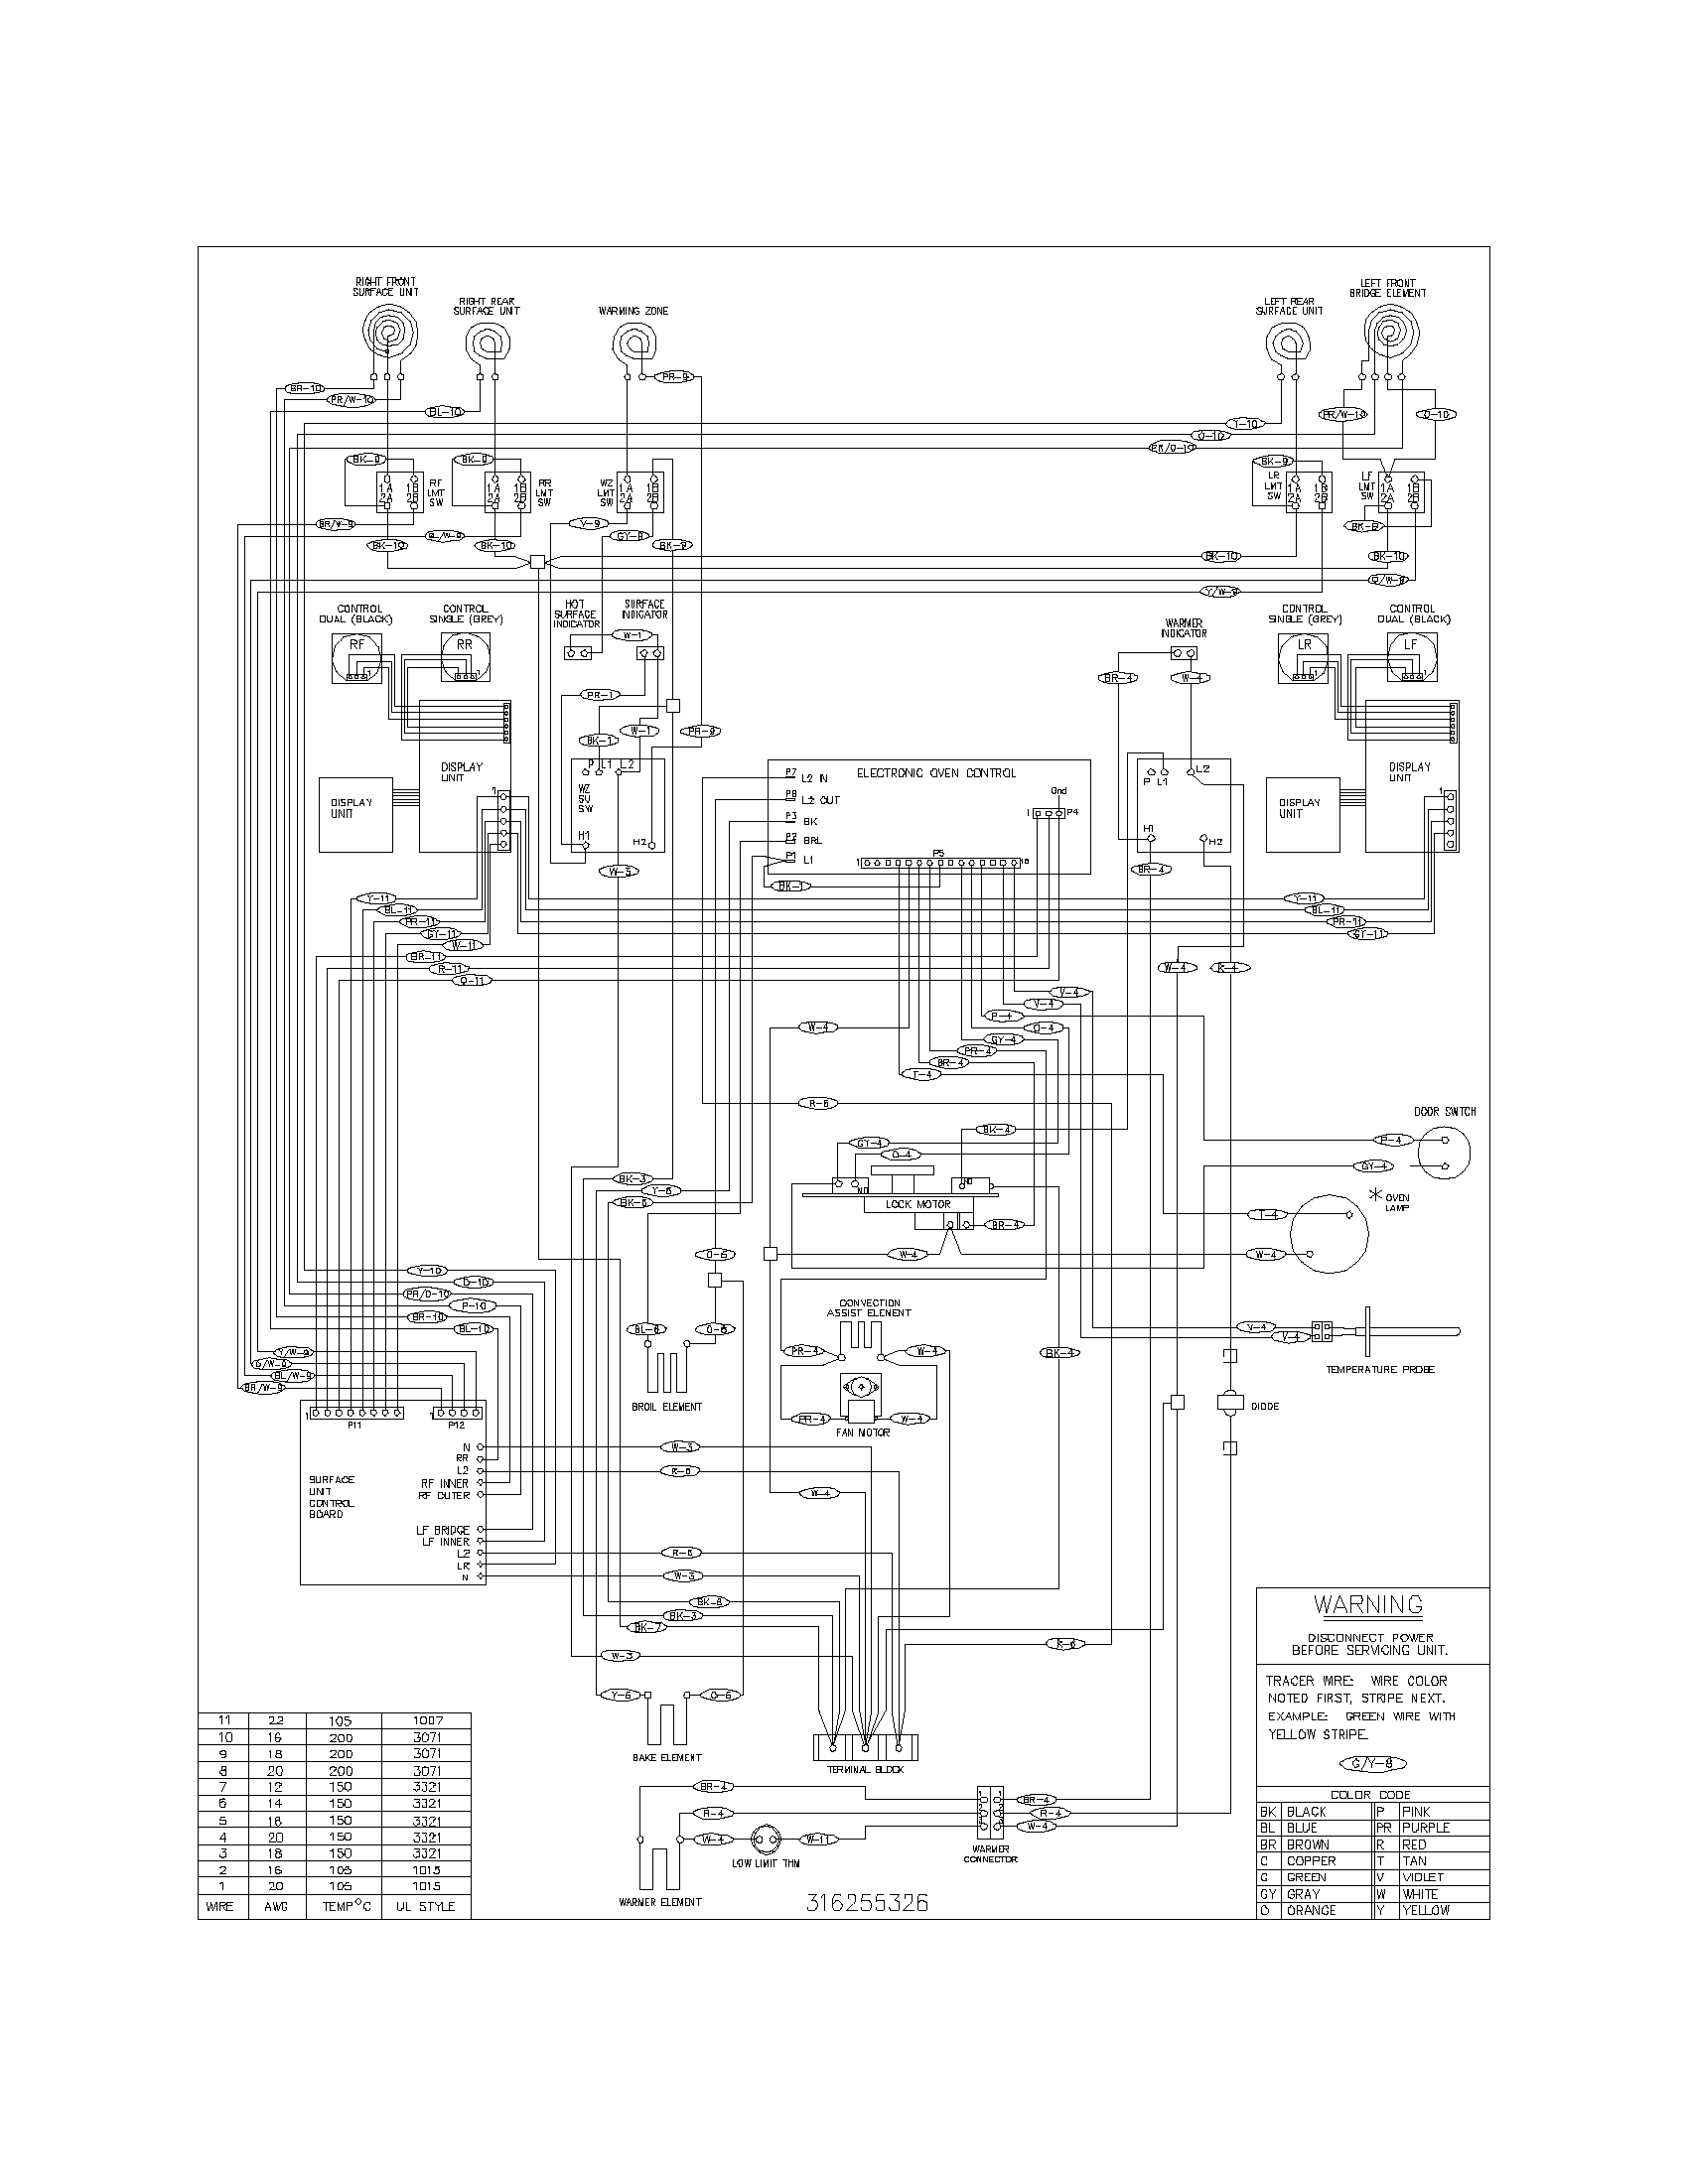 wiring diagram parts frigidaire plef398ccd electric range timer stove clocks and  at suagrazia.org